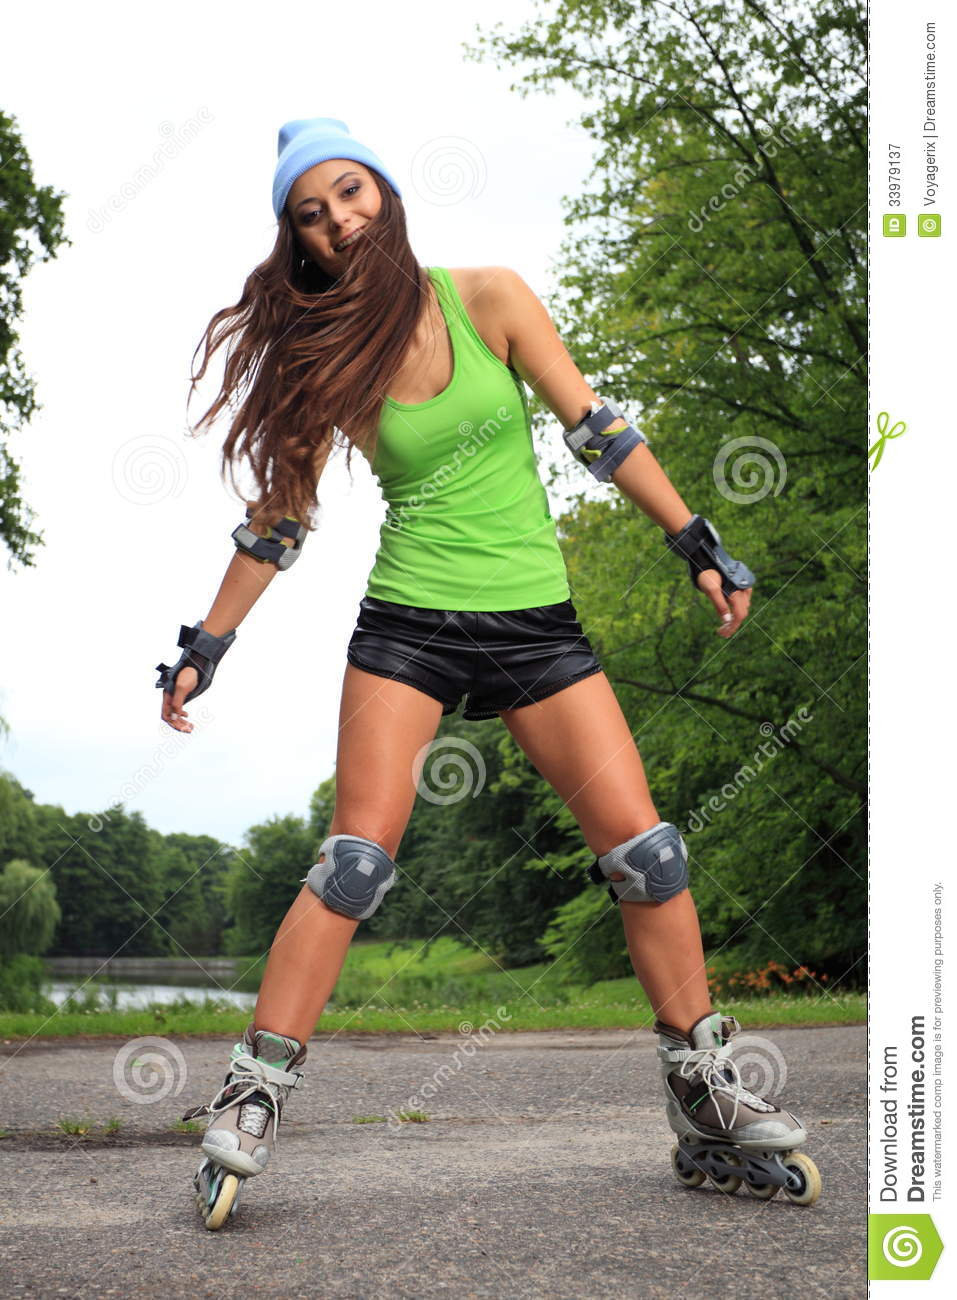 Active Young People - Rollerblading, Skateboarding Royalty